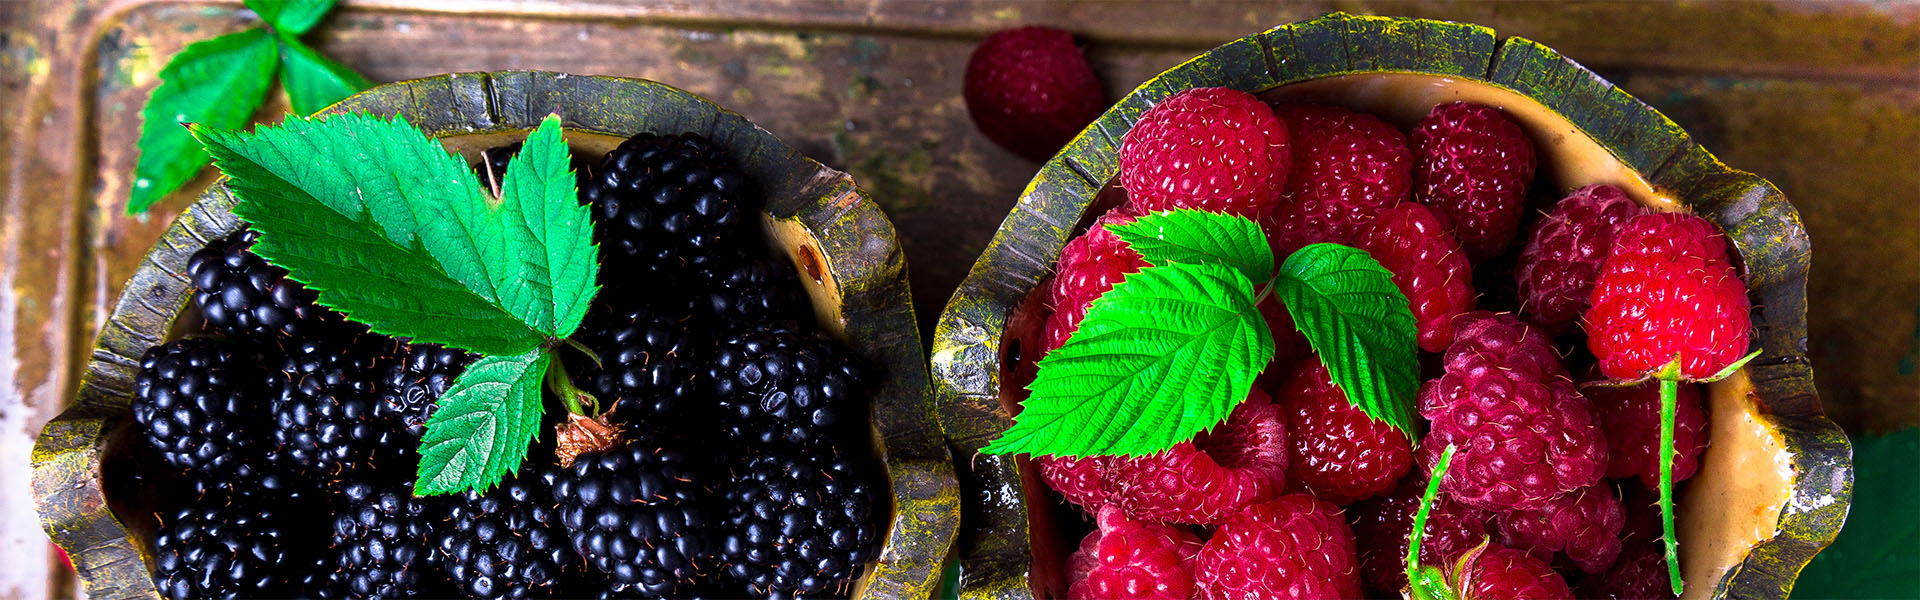 """<p data-aos=fade-up style=""""text-align:center""""><strong>Spring is a perfect time for small fruits planting</strong></p> <p class=vice data-aos=fade-up><a href=""""https://www.zahradaflora.cz/en/fruit-trees/"""">More here</a></p>"""